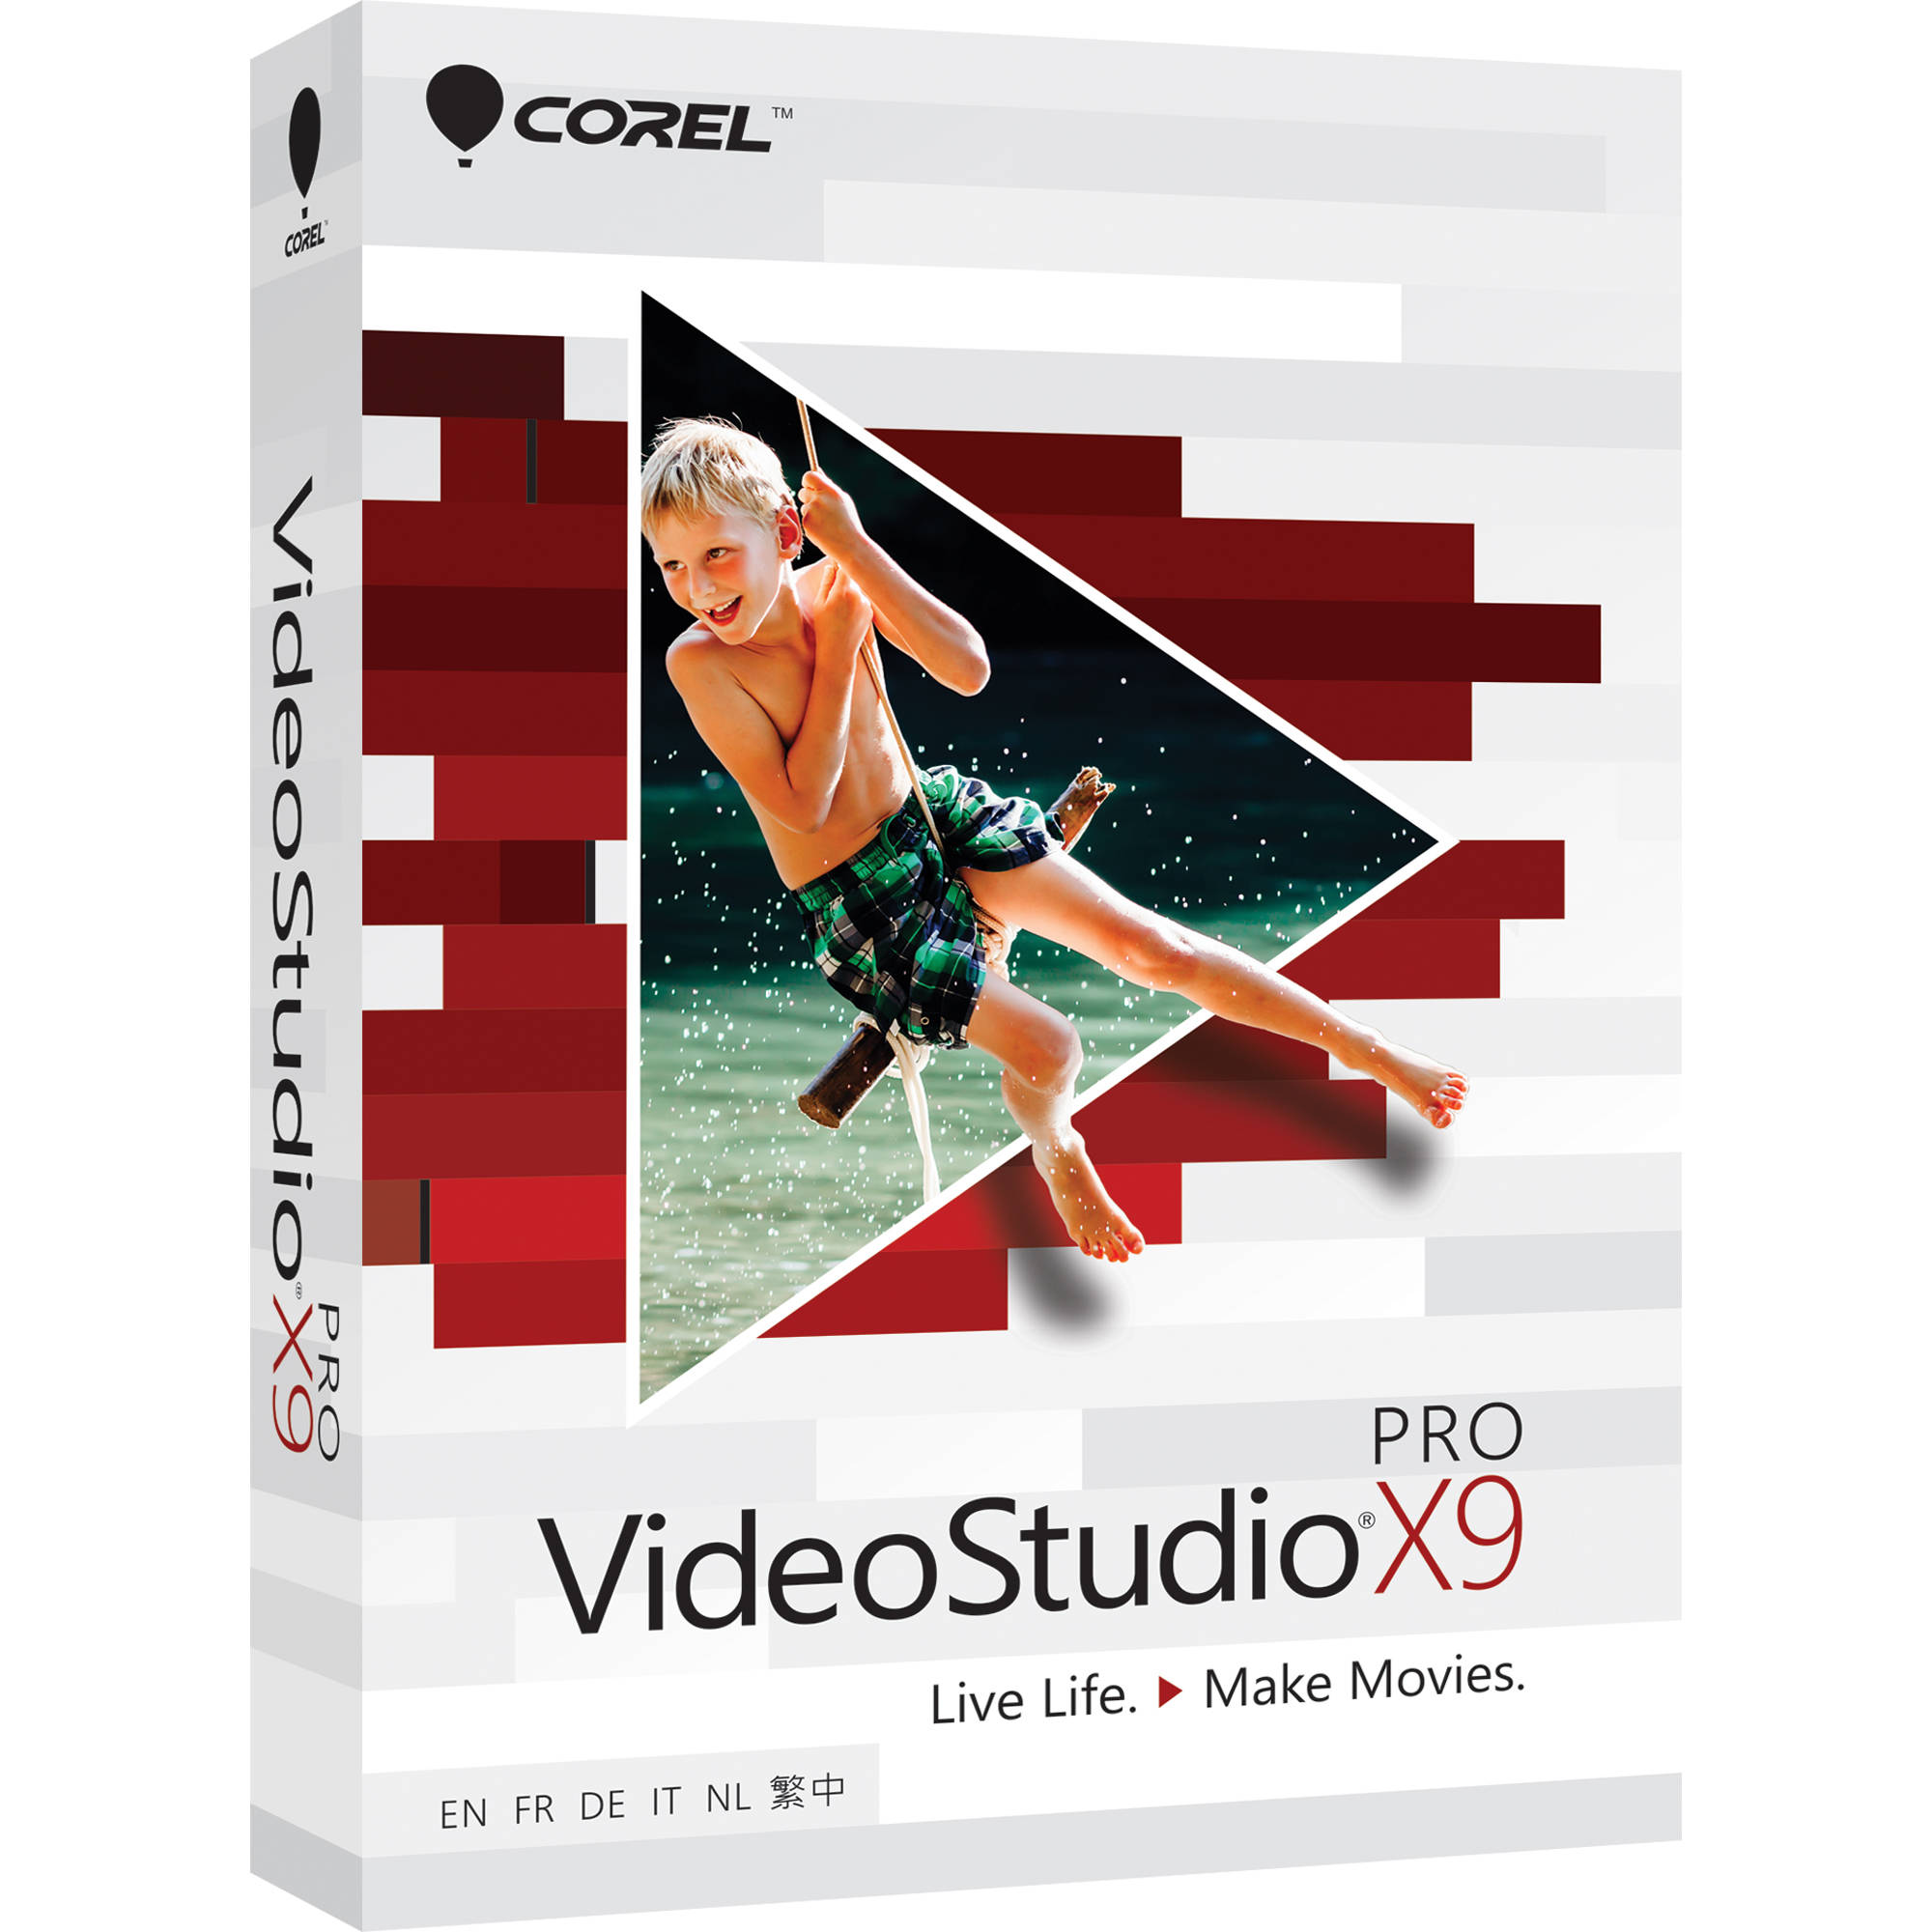 Corel VideoStudio Pro X9 (Boxed) VSPRX9MLMBAM B&H Photo Video